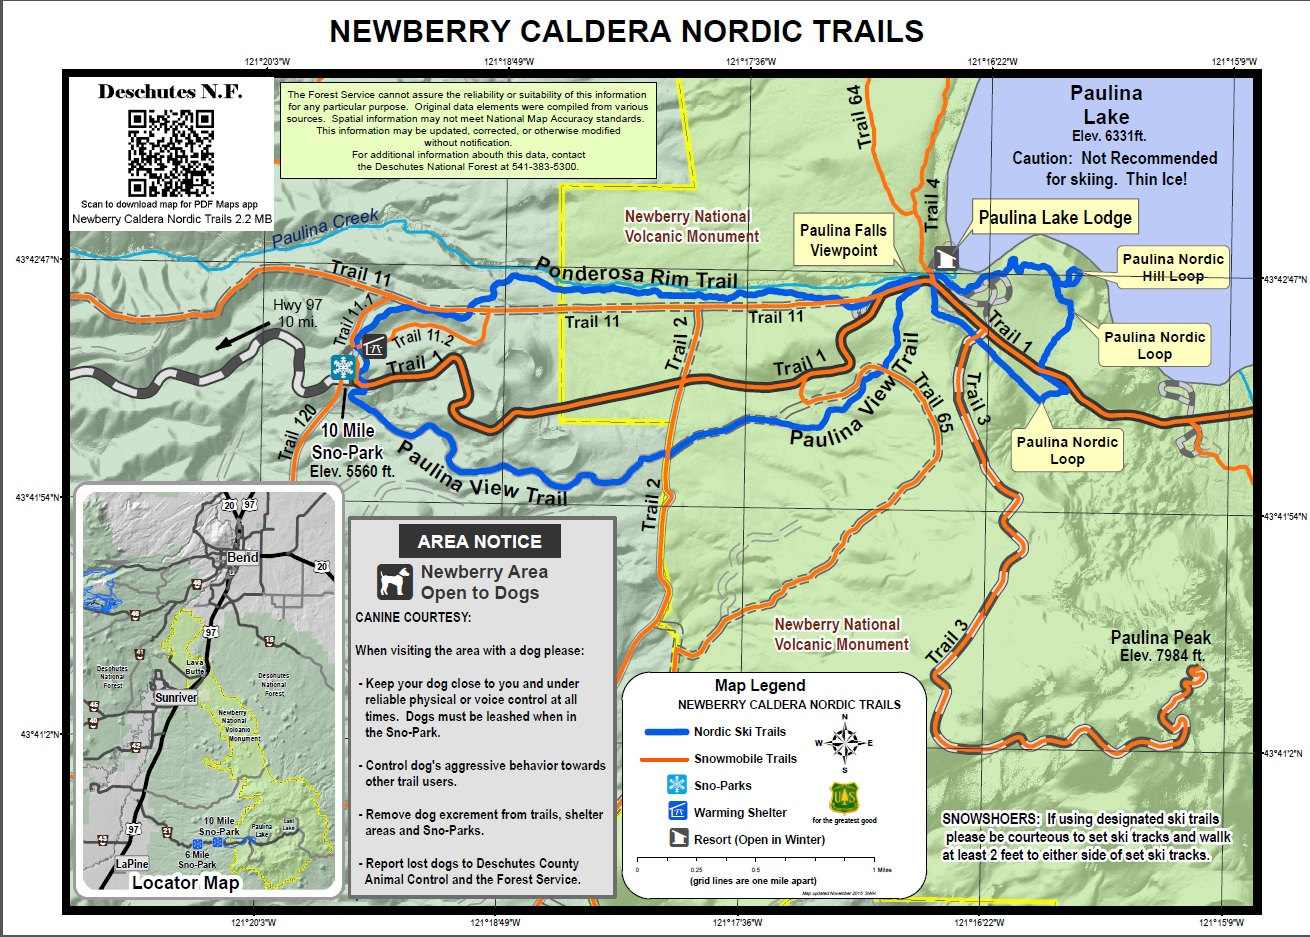 Deschutes National Forest - Maps & Publications